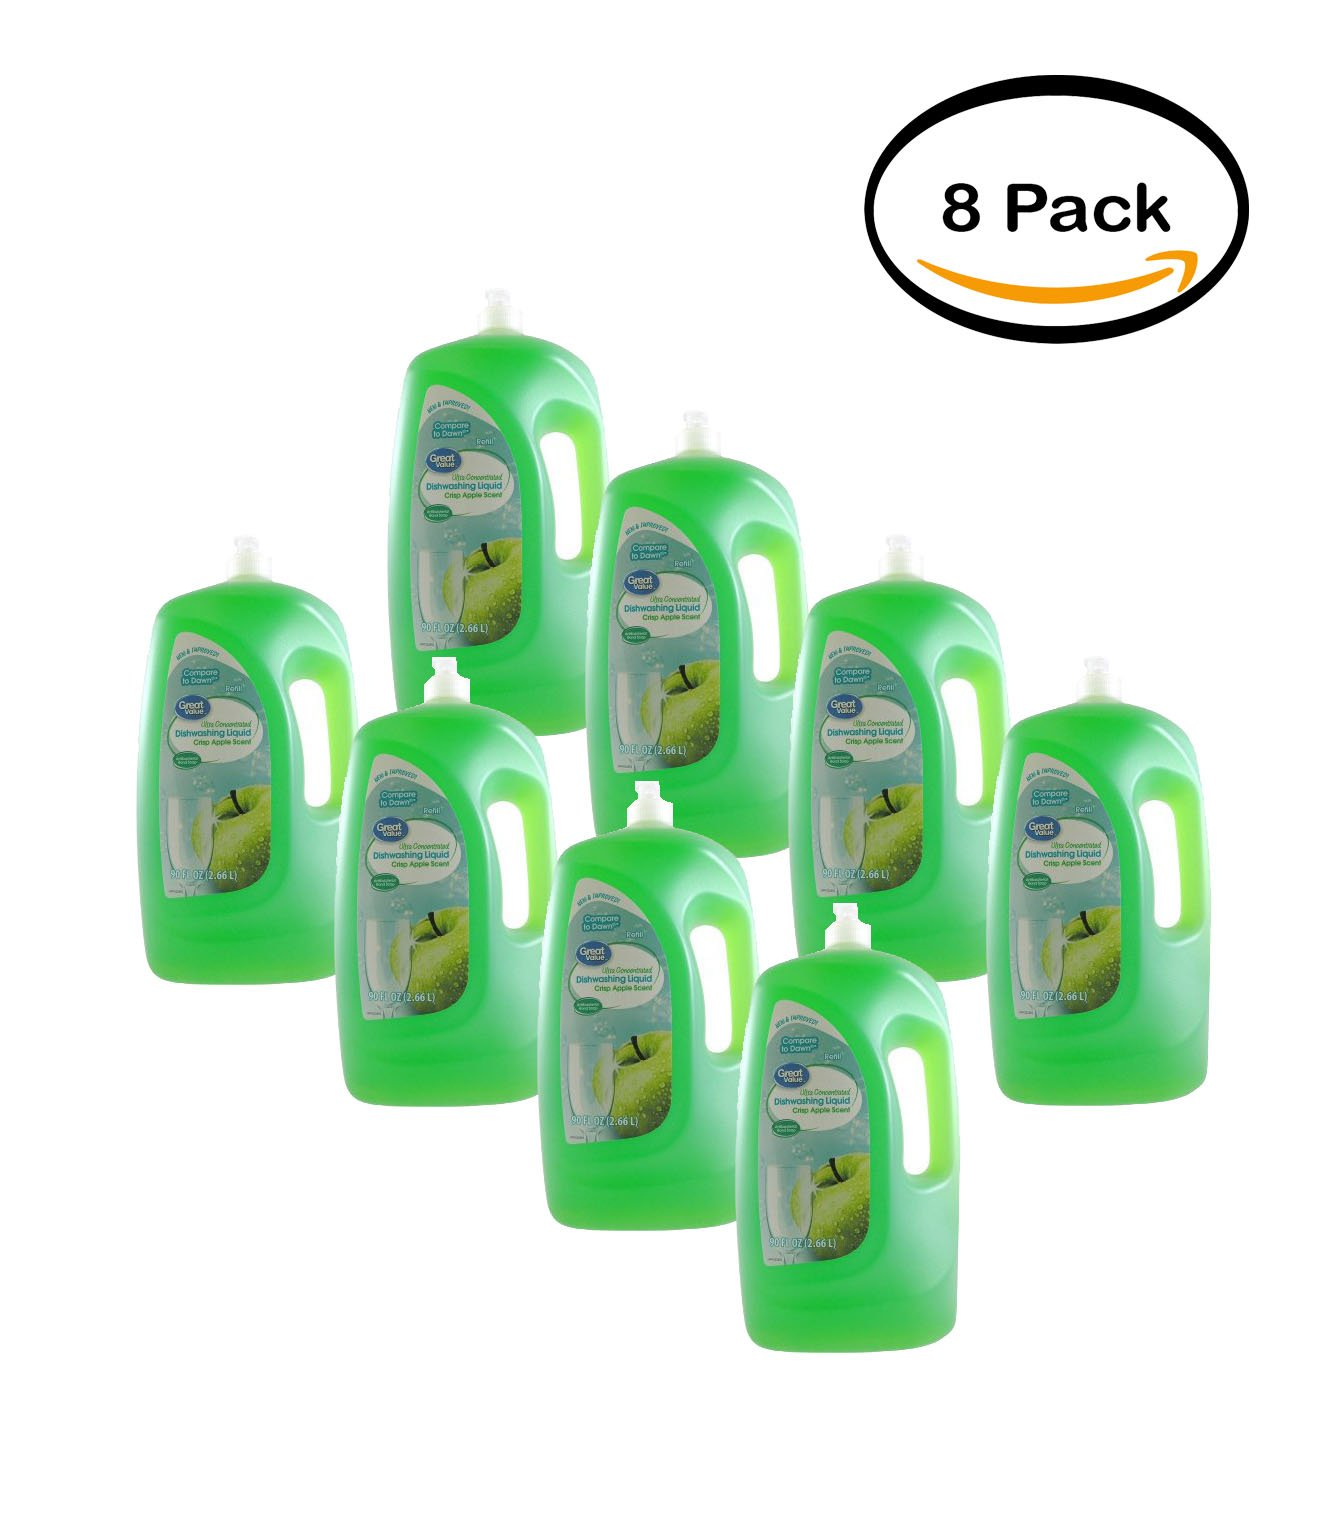 PACK OF 8 - Great Value Ultra Concentrated Dishwashing Liquid, Crisp Apple Scent, 90 oz